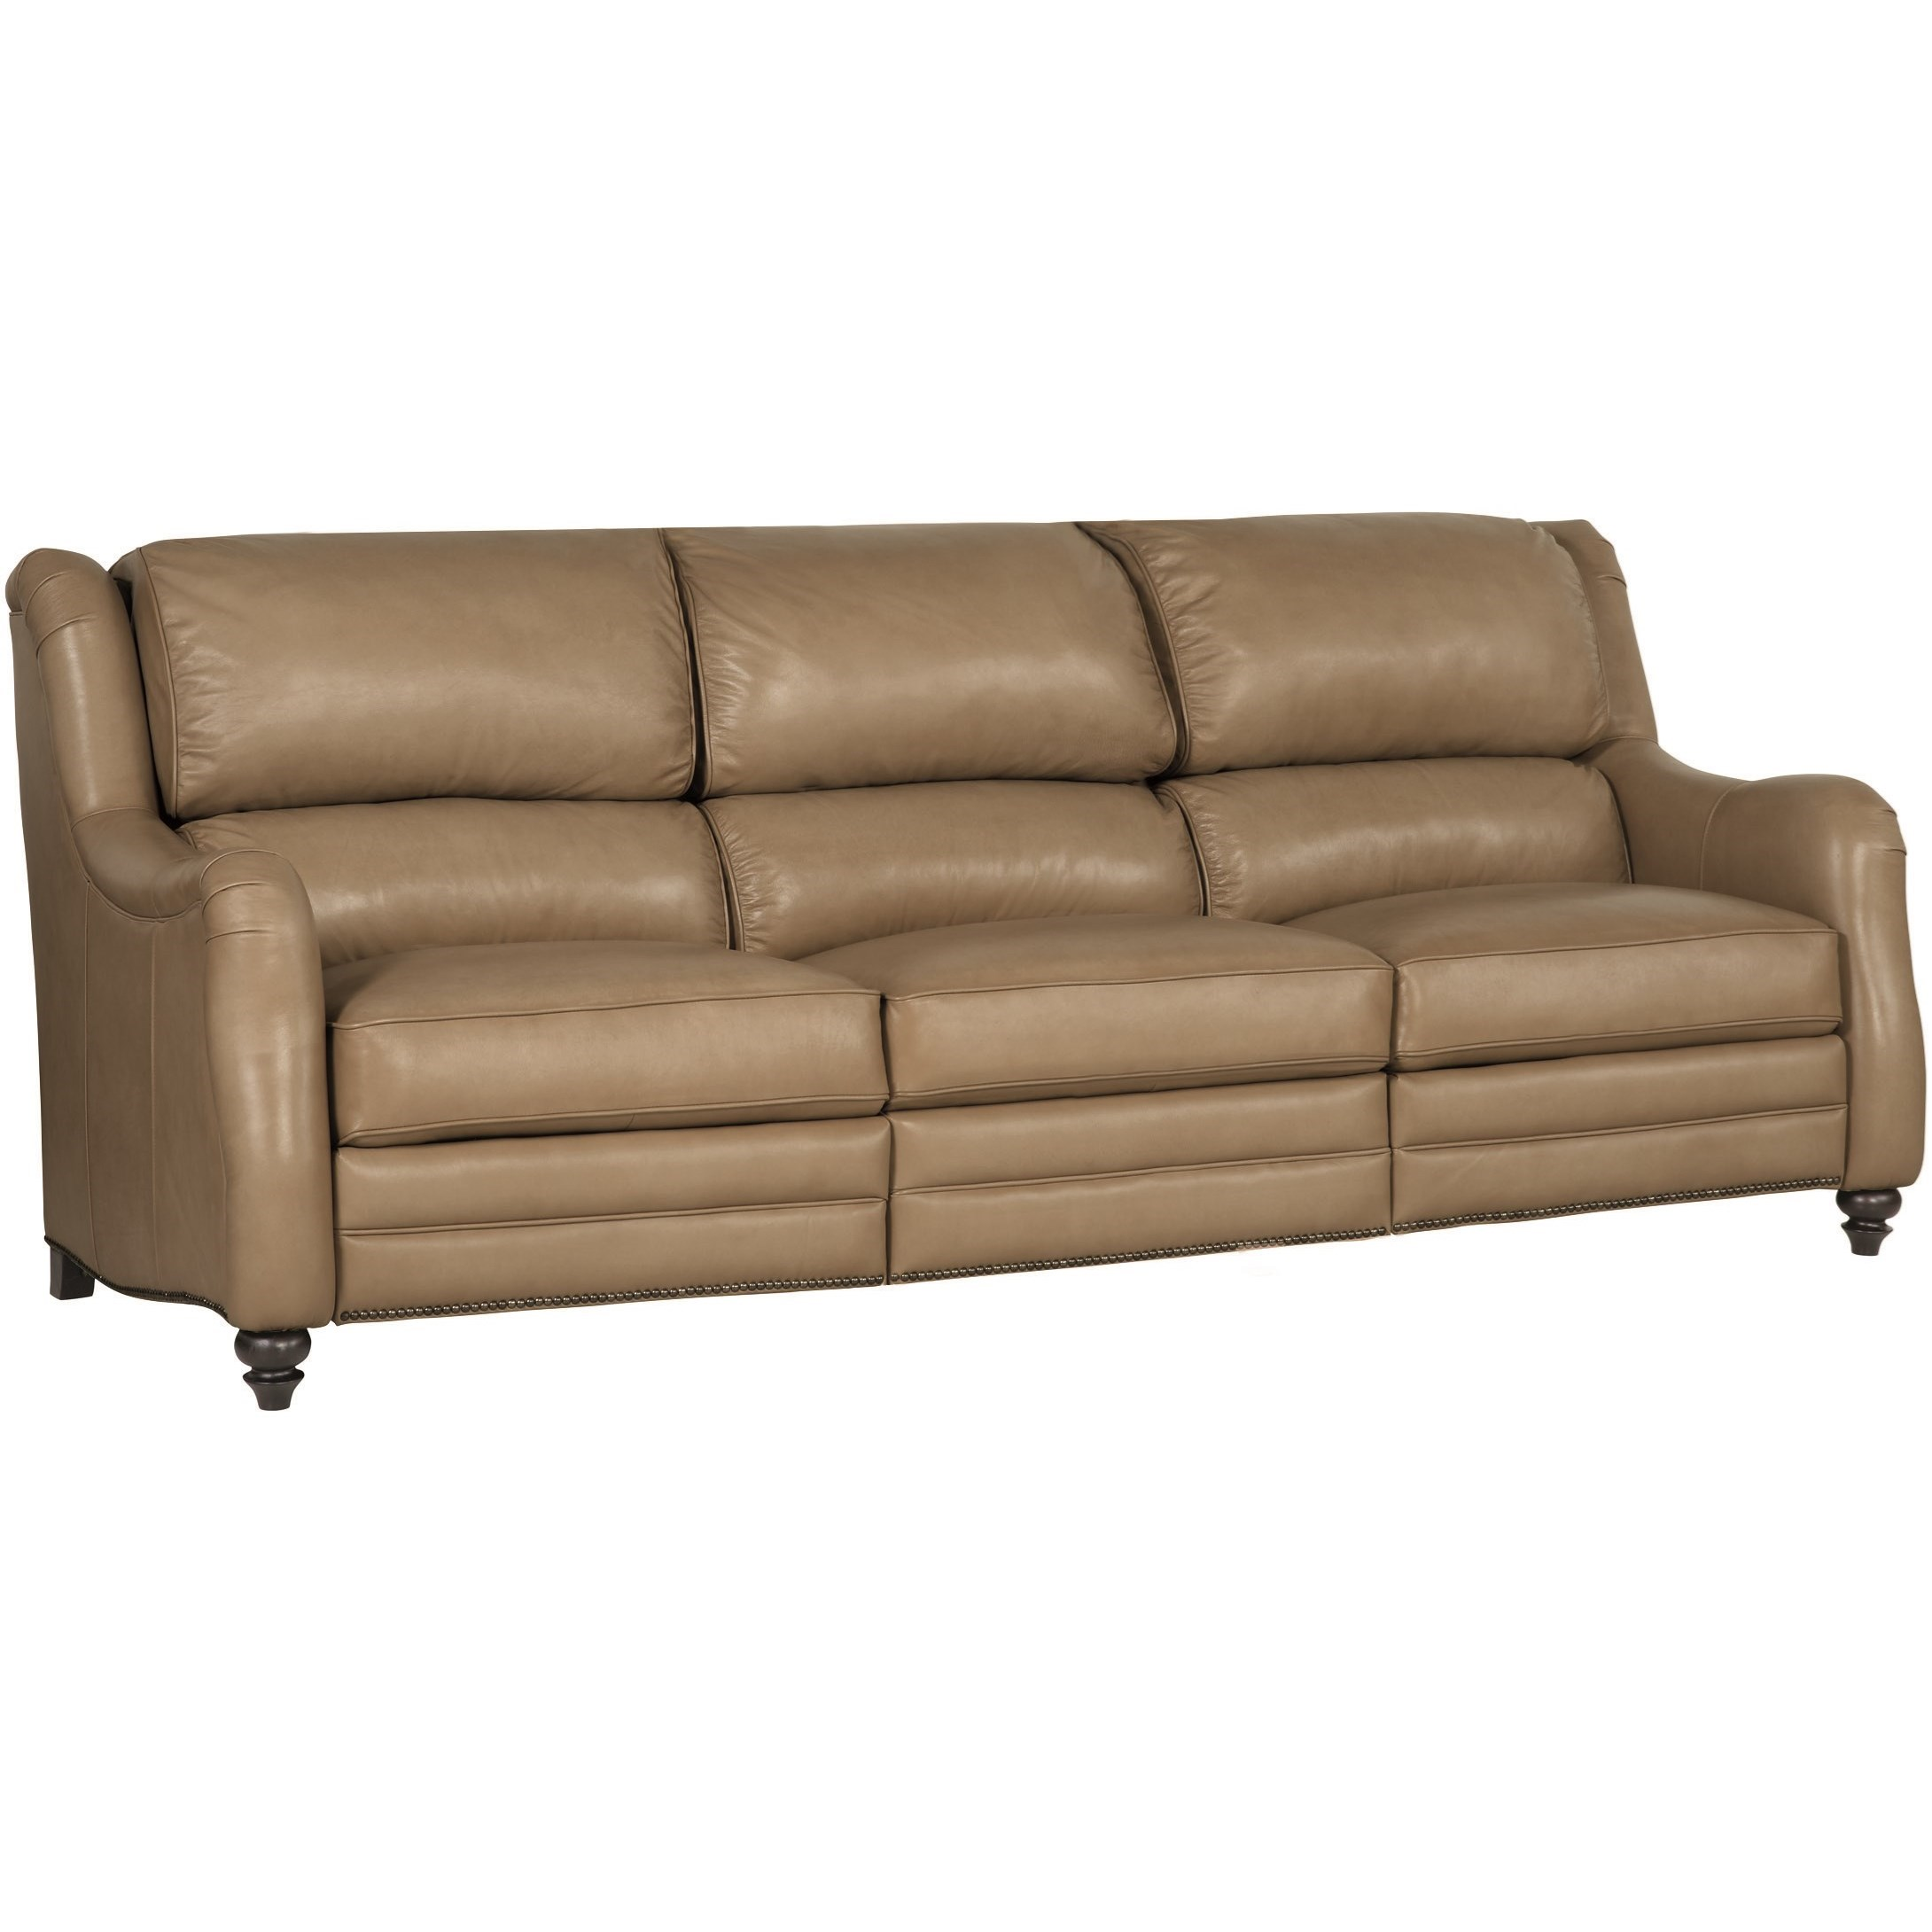 Bernhardt lawson 437rl reclining power motion sofa dunk bright furniture reclining sofa Bernhardt living room furniture